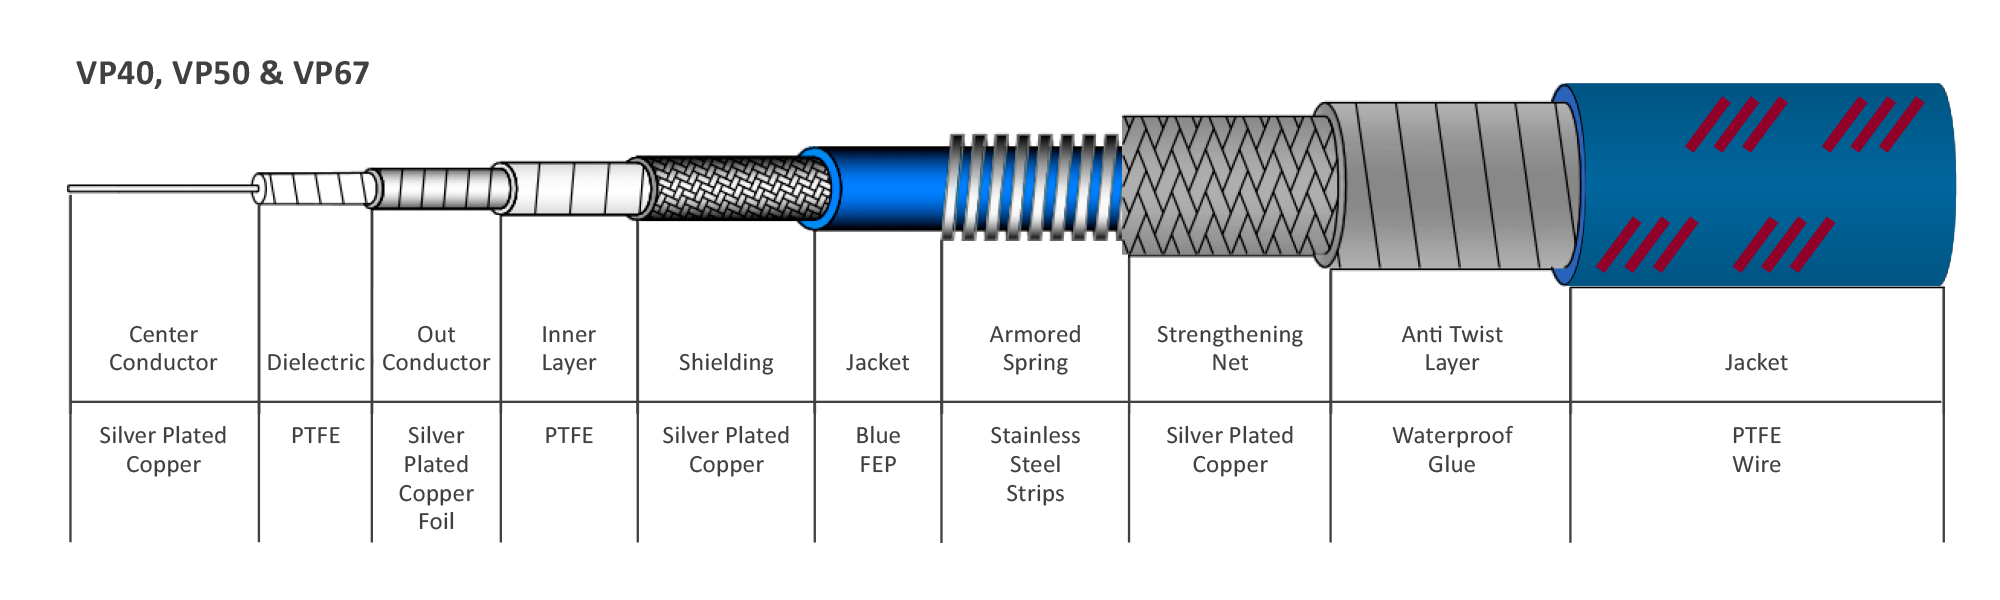 Continuum Technologies - Vero RF Cable Series - veroPHASE - Cable Structure VP40, VP50, VP67